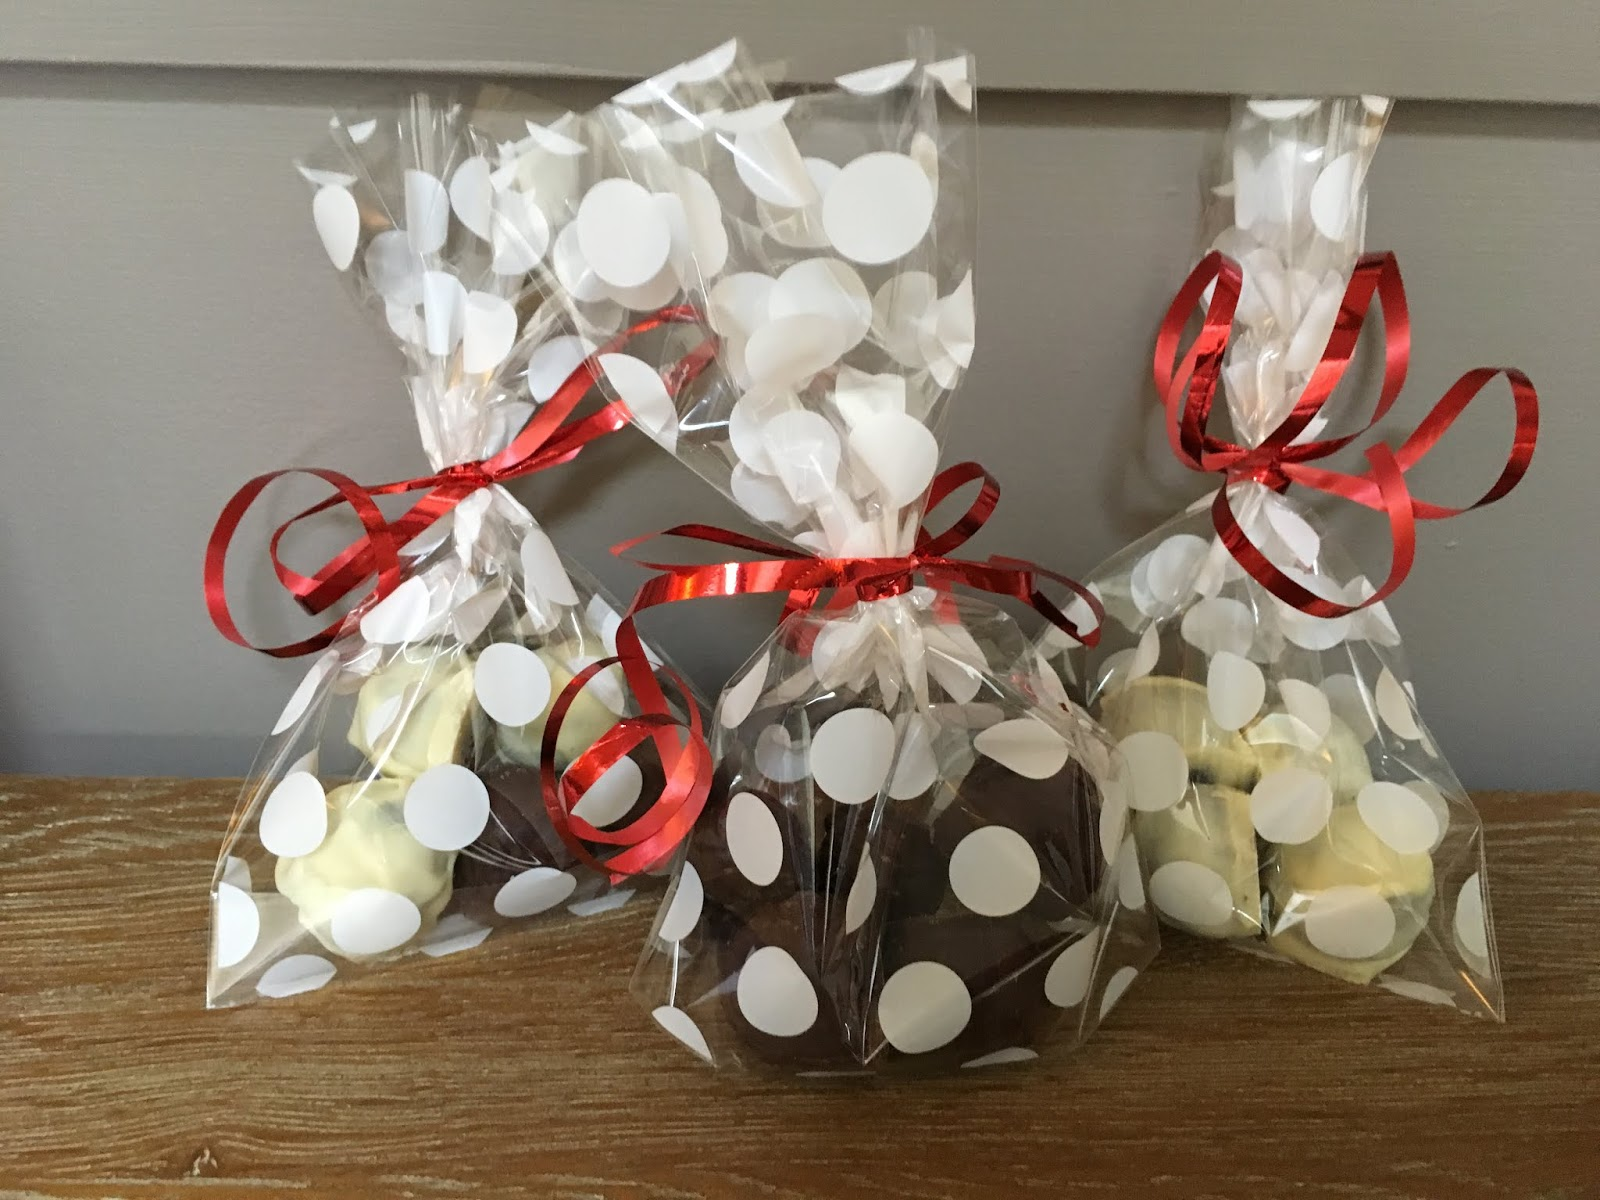 Prosecco and chocolate gift box